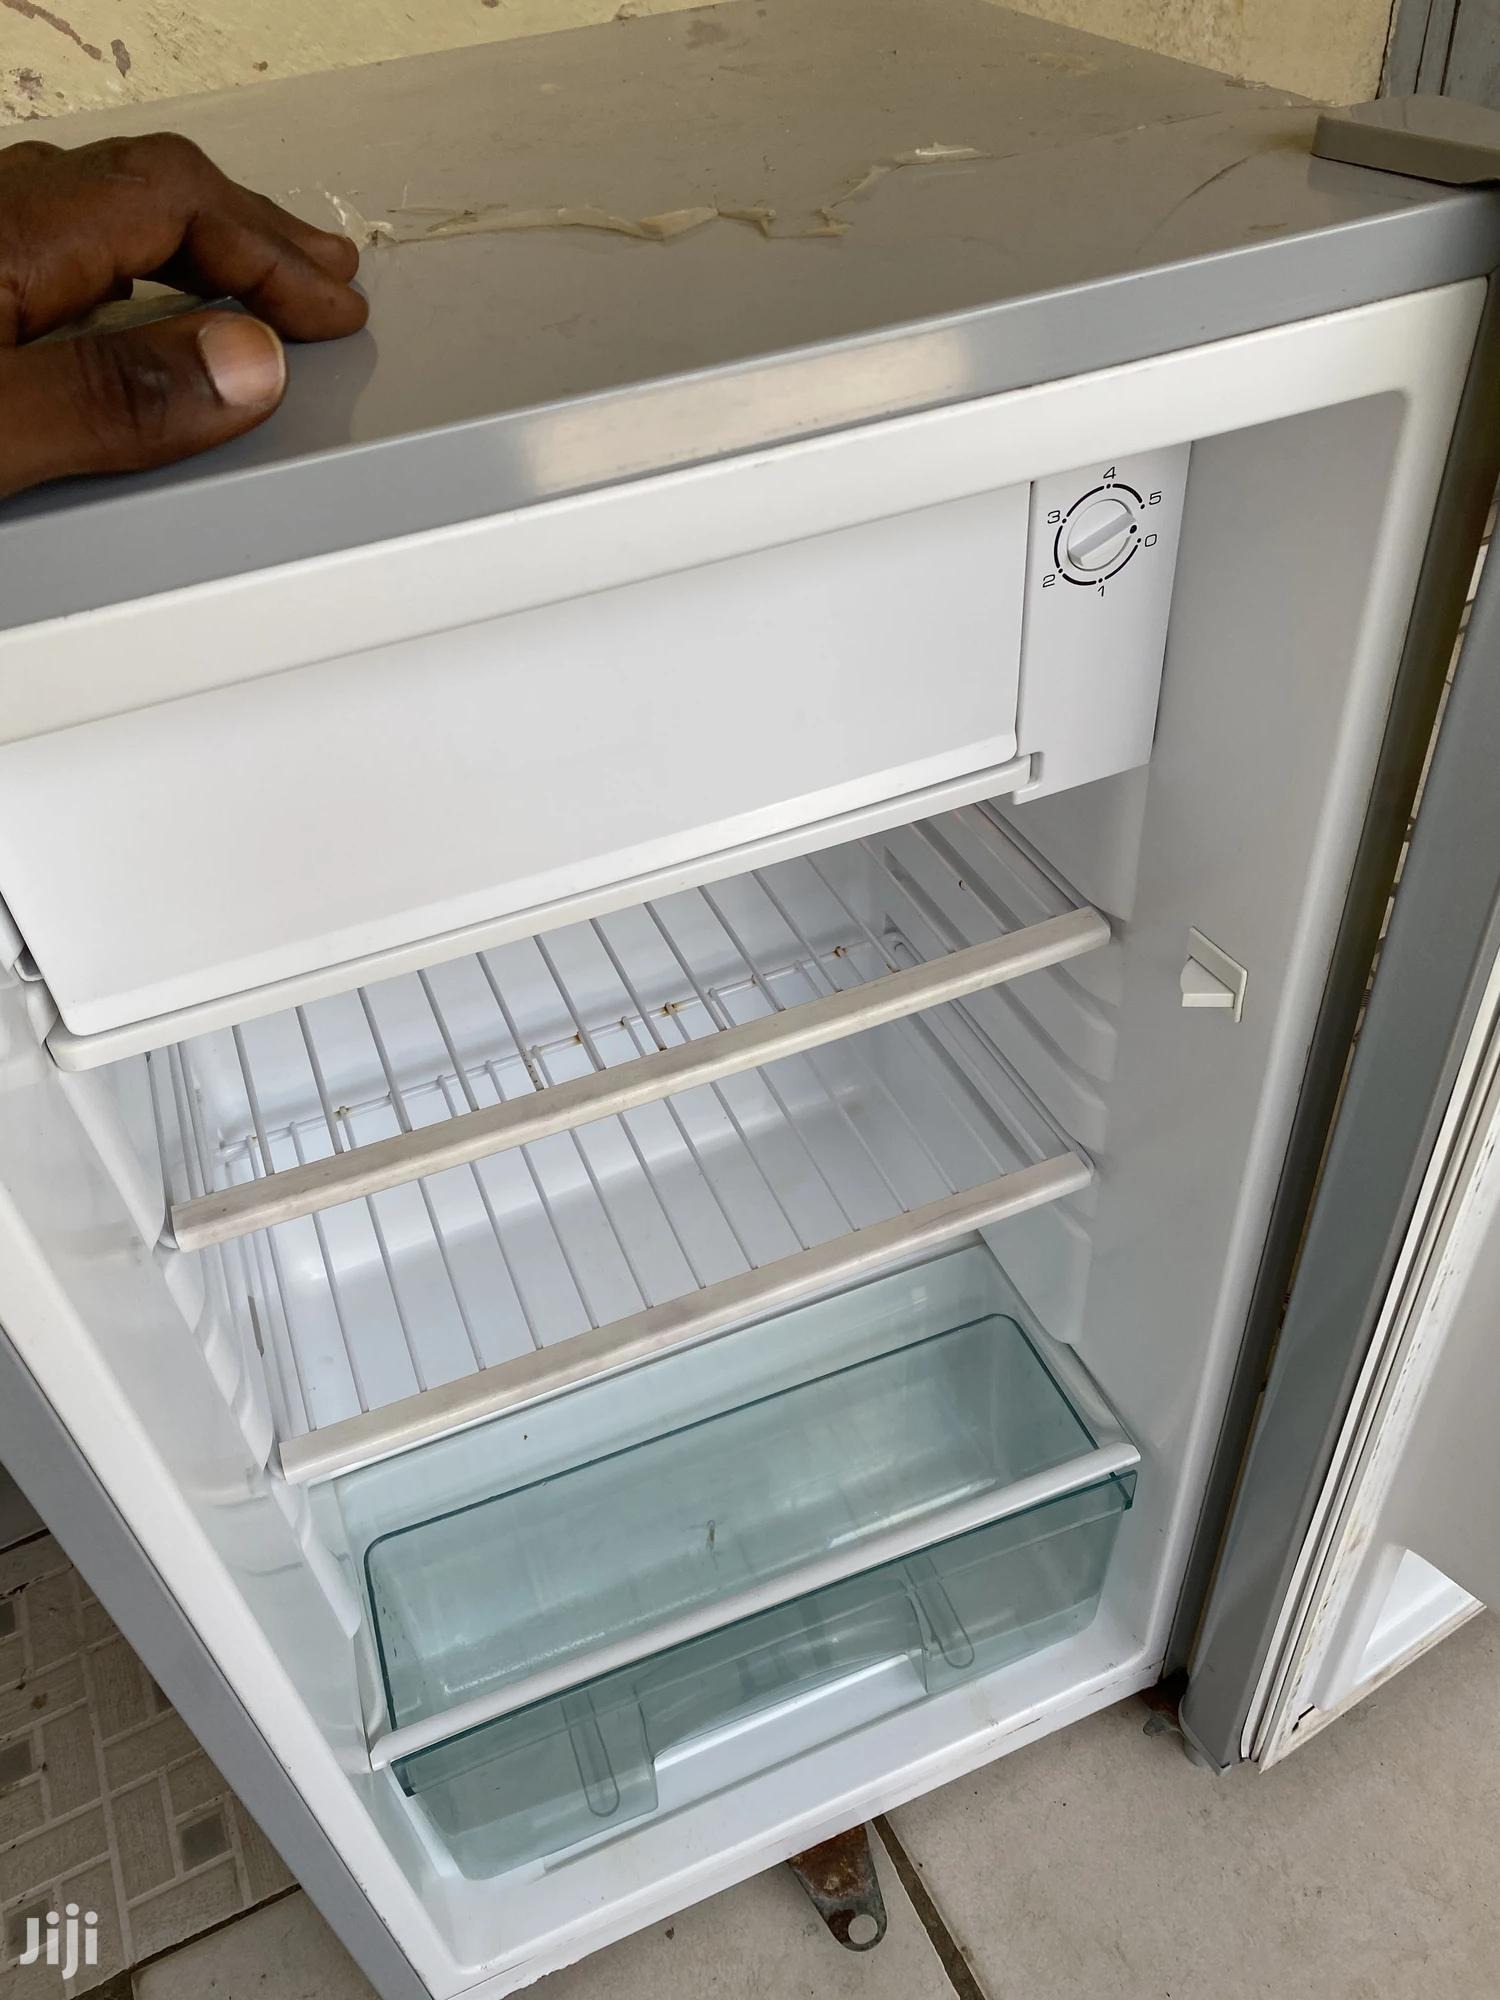 Table Top Fridge For Sale | Kitchen Appliances for sale in Achimota, Greater Accra, Ghana